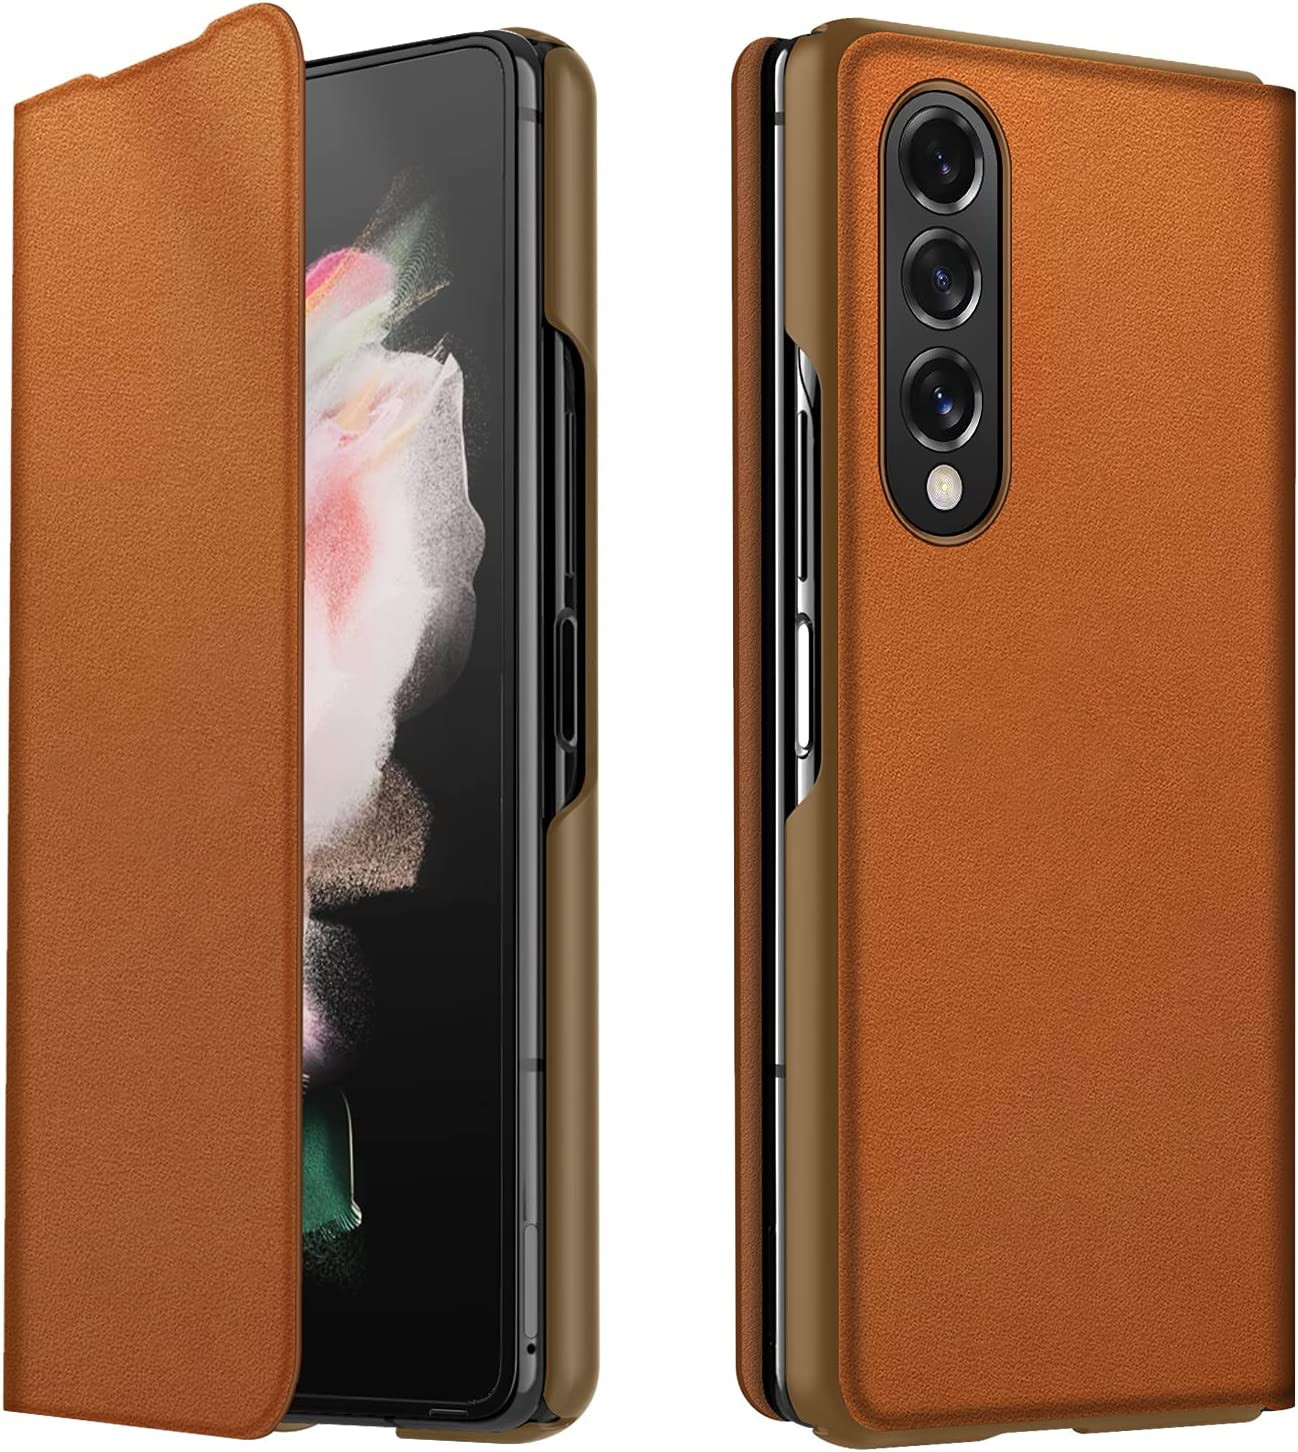 CENMASO Designed for Samsung Galaxy Z fold 3 Case, Ultra-Thin Leather Magnetic Flip Bumper Case for Galaxy z Fold 3 (2021)- Saddle Brown